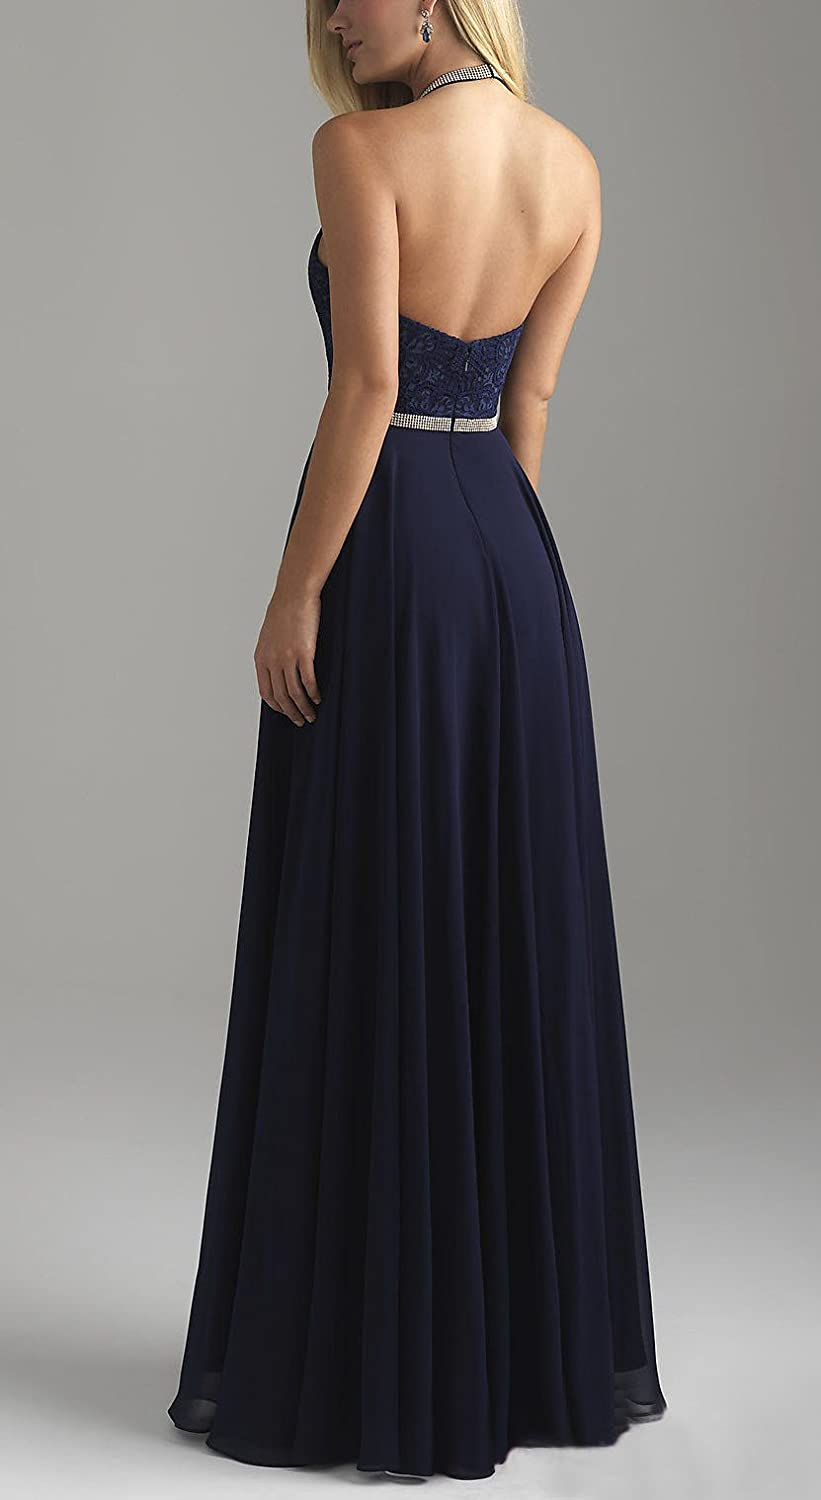 Zhongde 2018 Women Long Halter Prom Dress A Line Chiffon and Lace Bridesmaid Evening Gown Beaded Blet